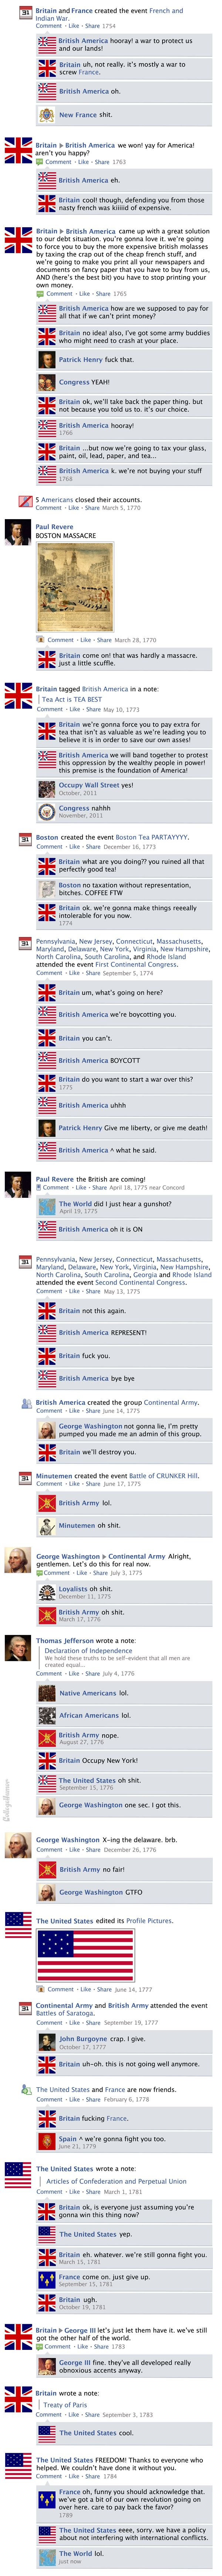 Facebook News Feed History of the World > American Revolution